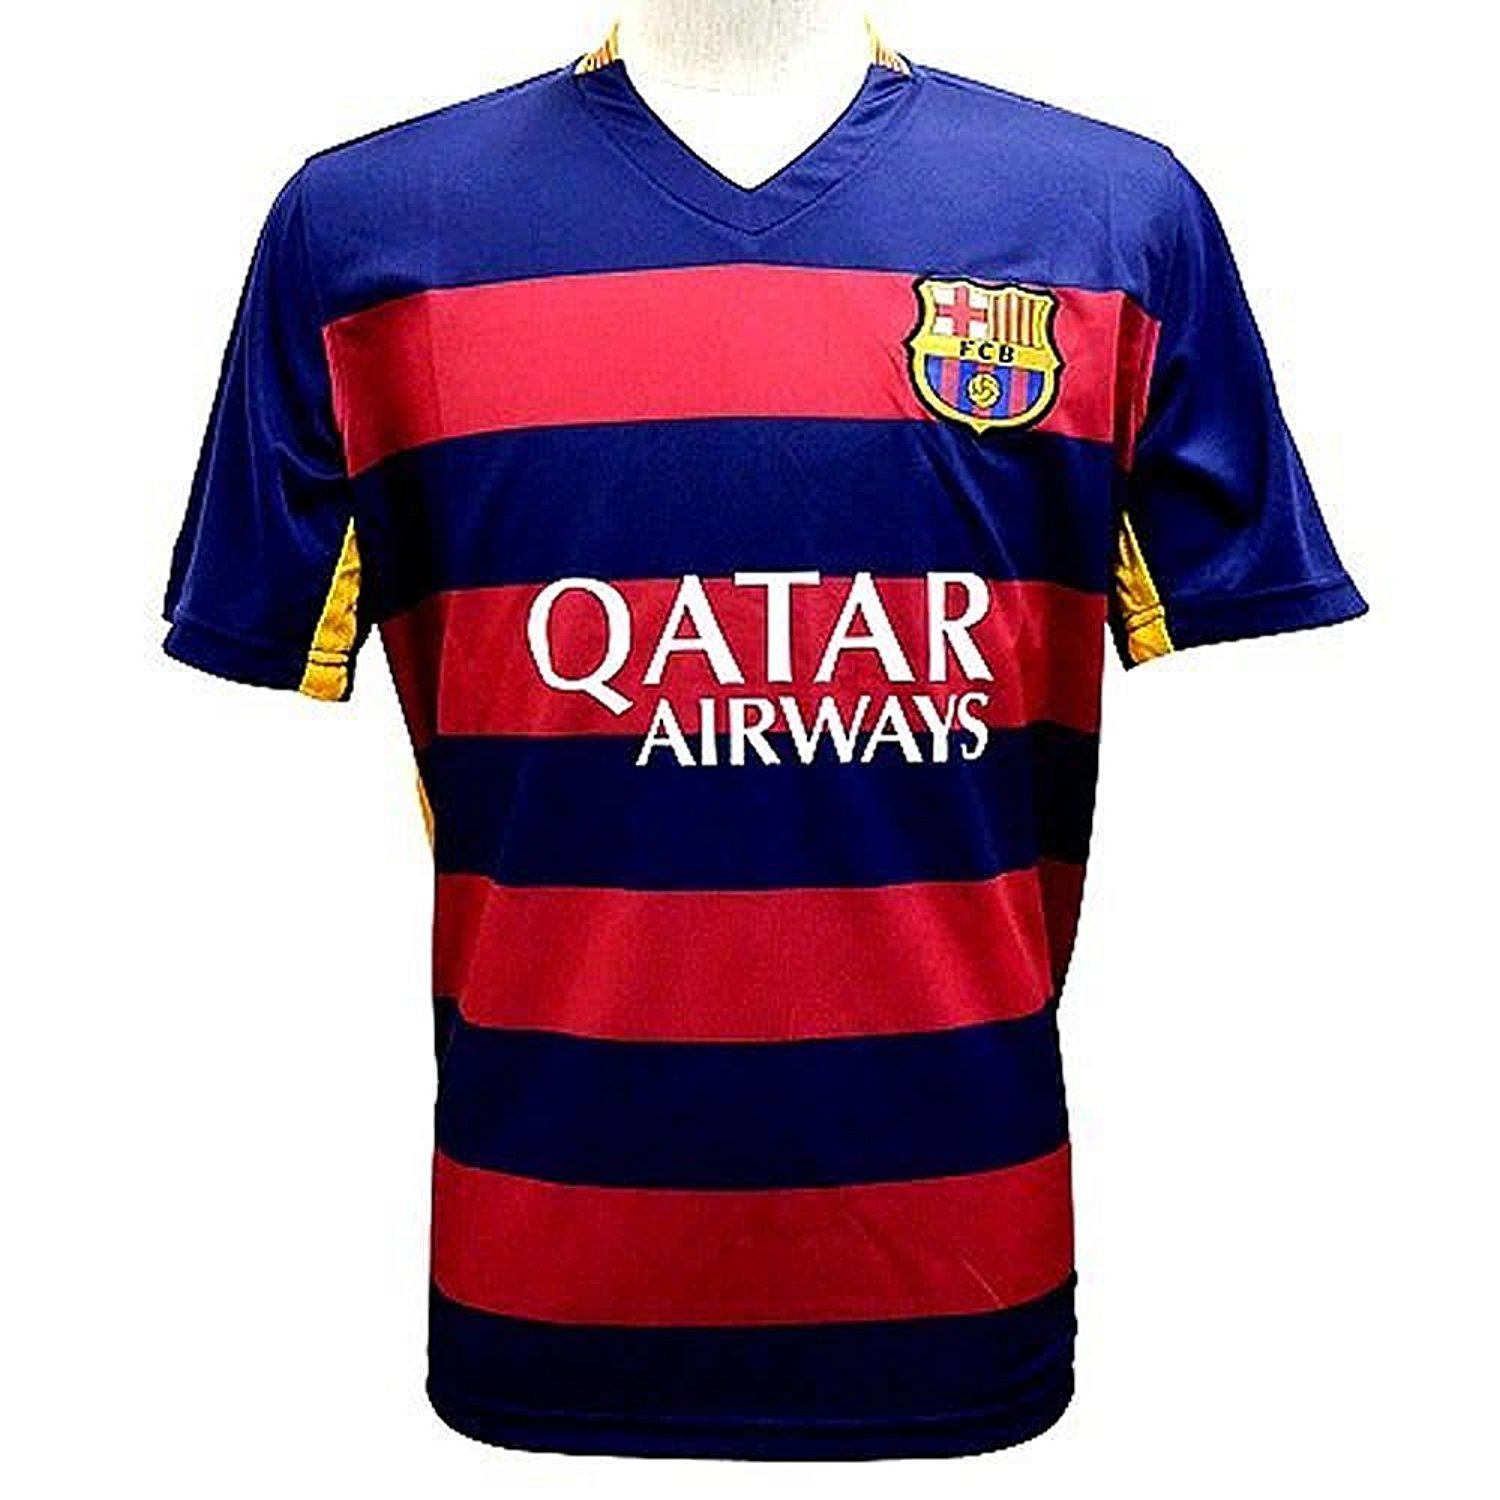 5c7e884ed Get Quotations · Barcelona Messi Soccer Shirts